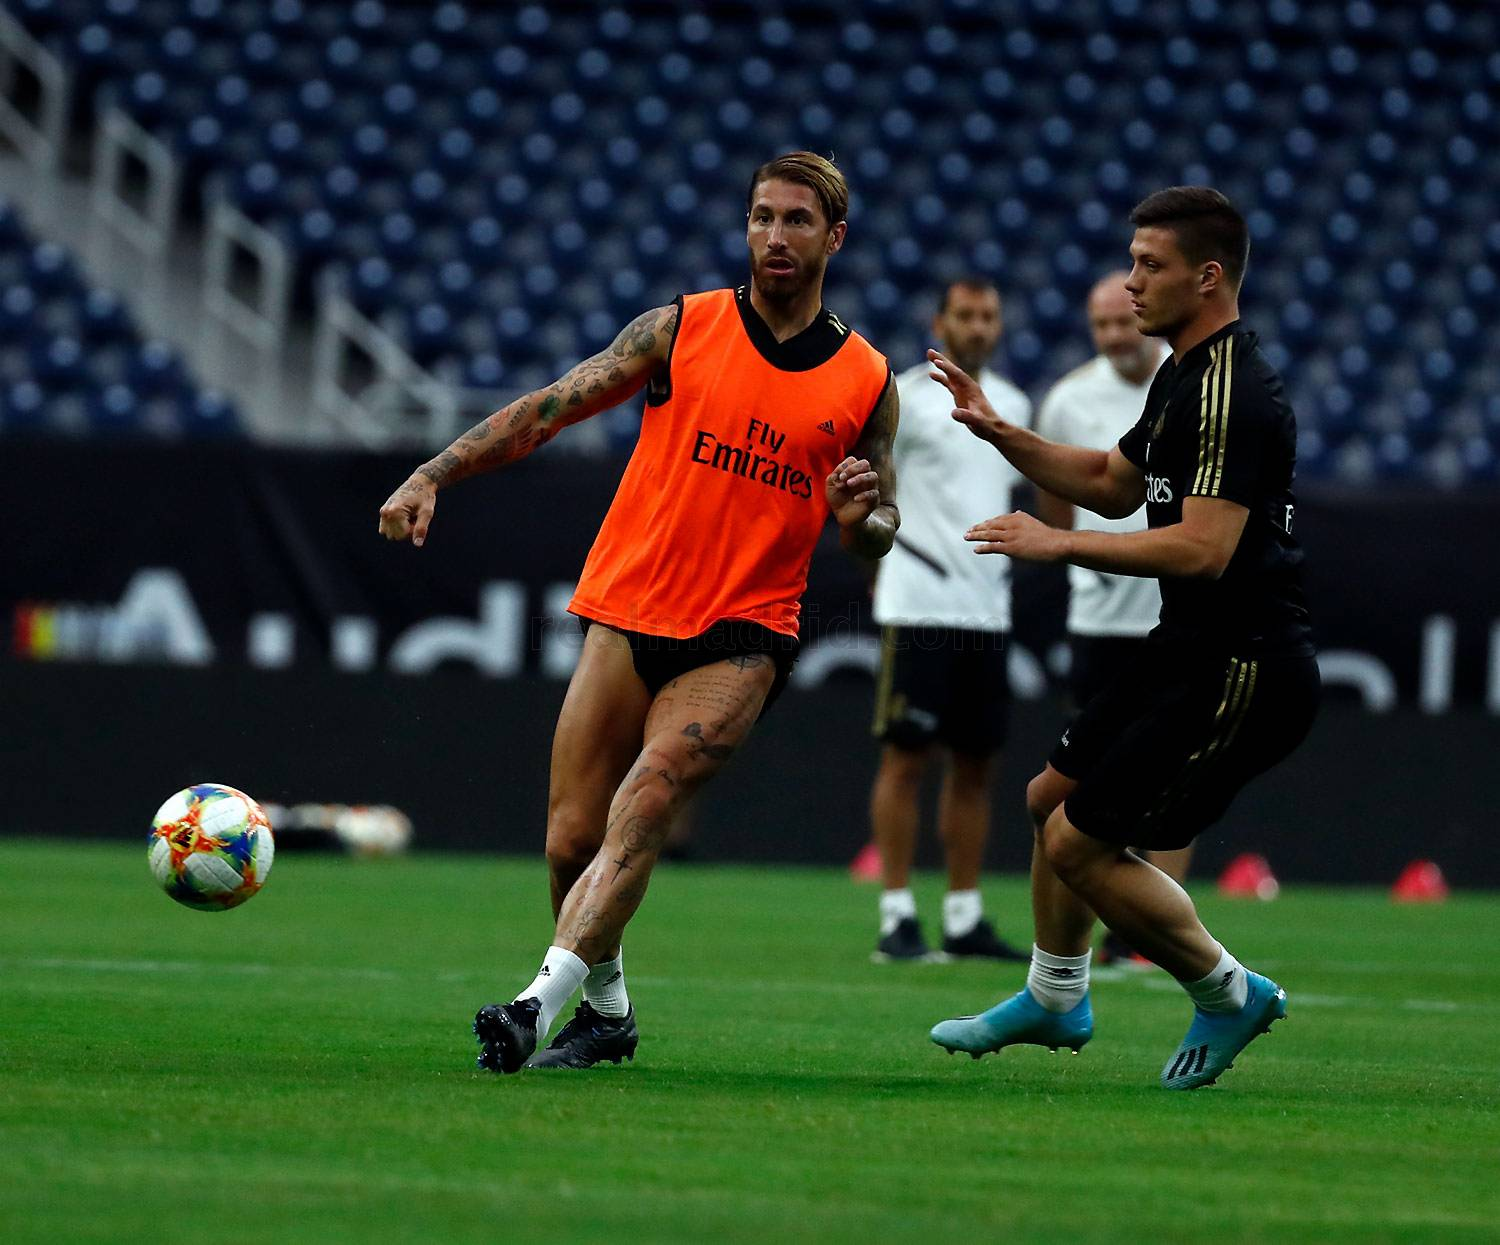 Real Madrid - Entrenamiento del Real Madrid en Houston - 20-07-2019